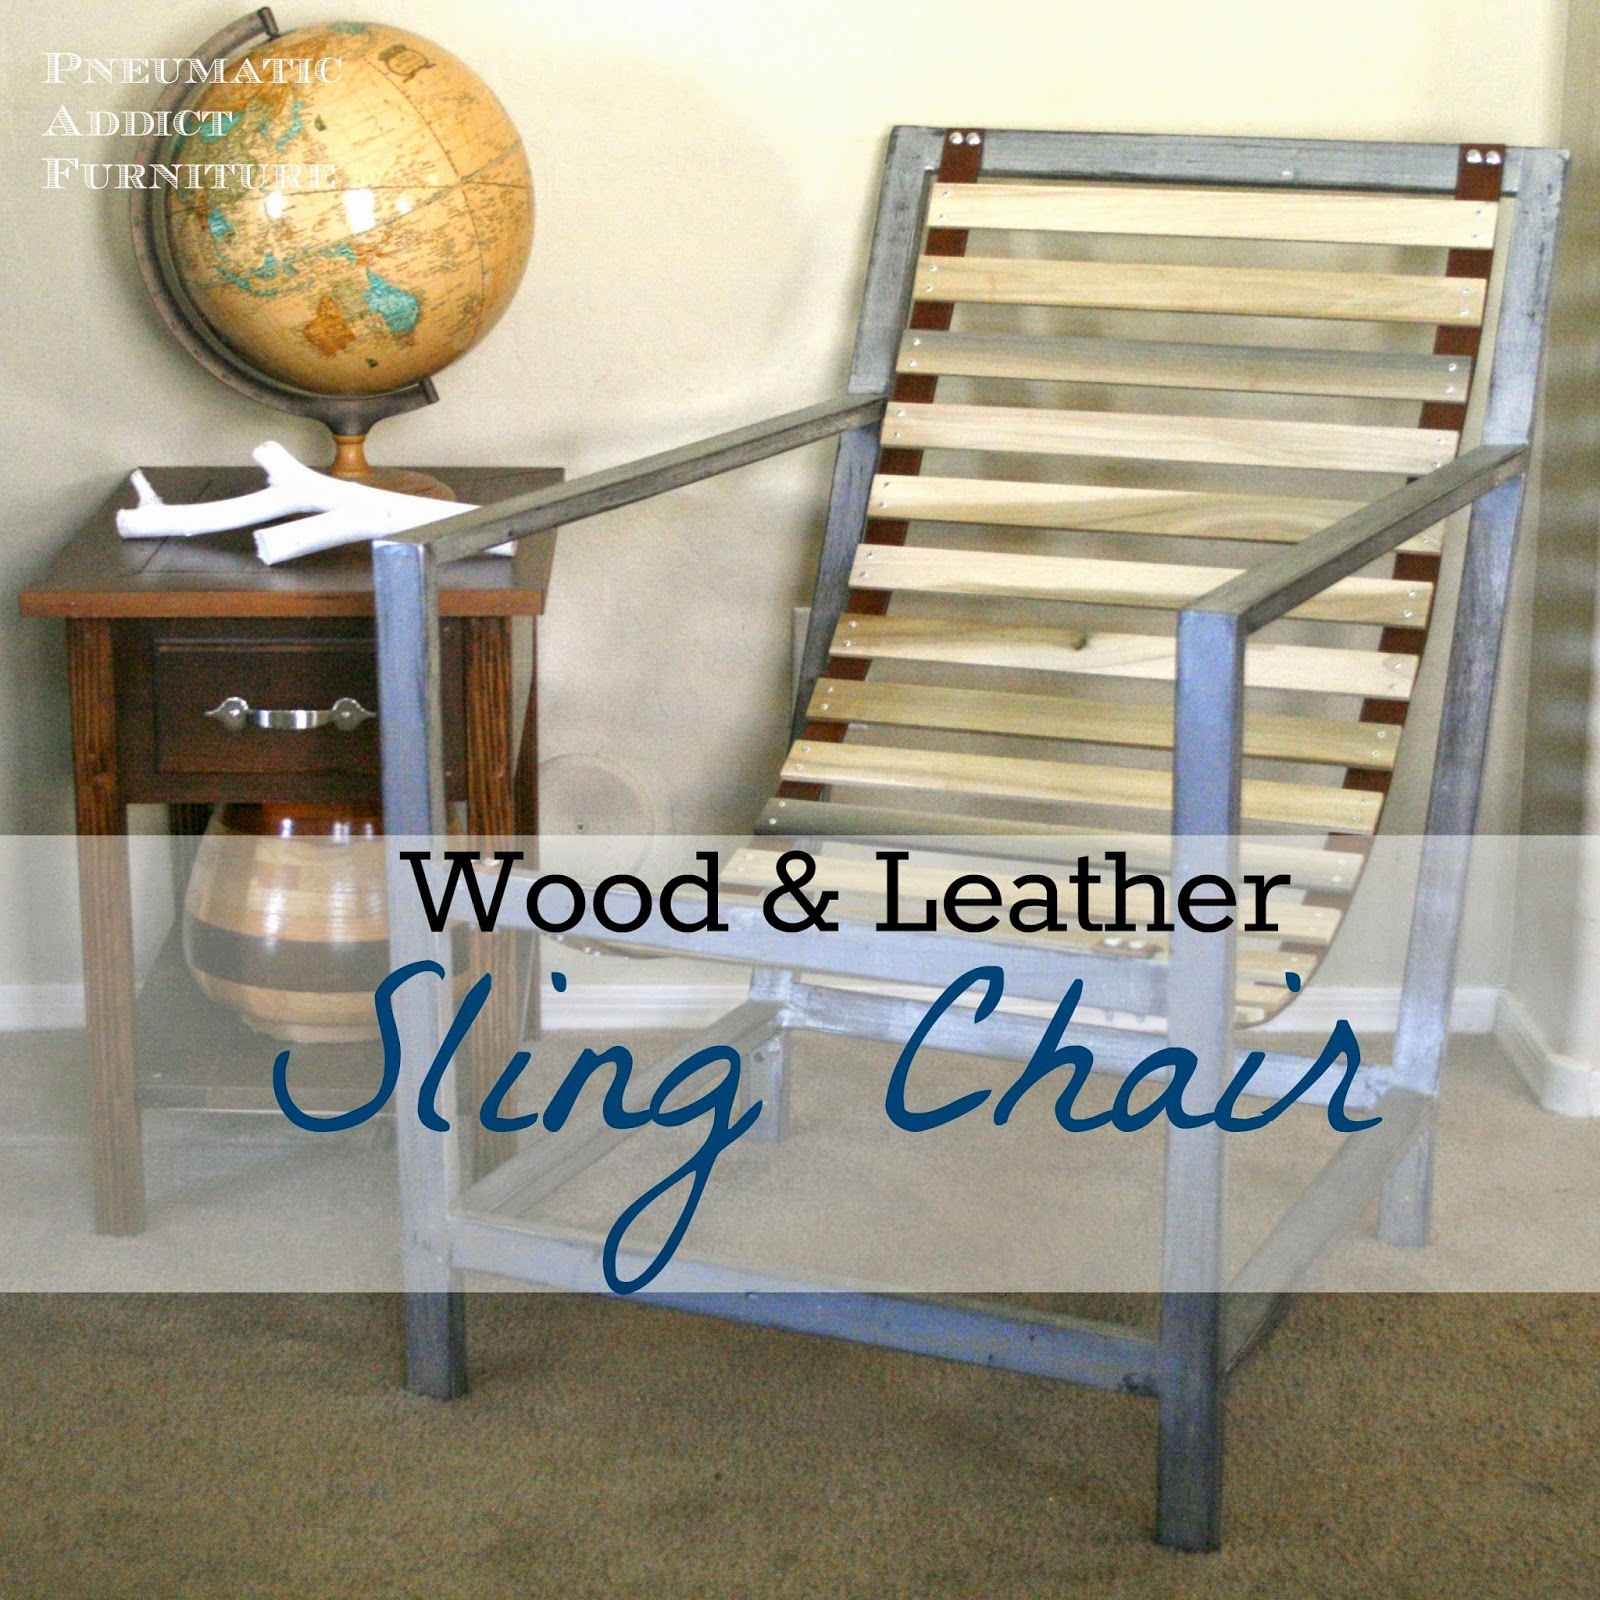 Wood And Leather Sling Chair Pneumatic Addict